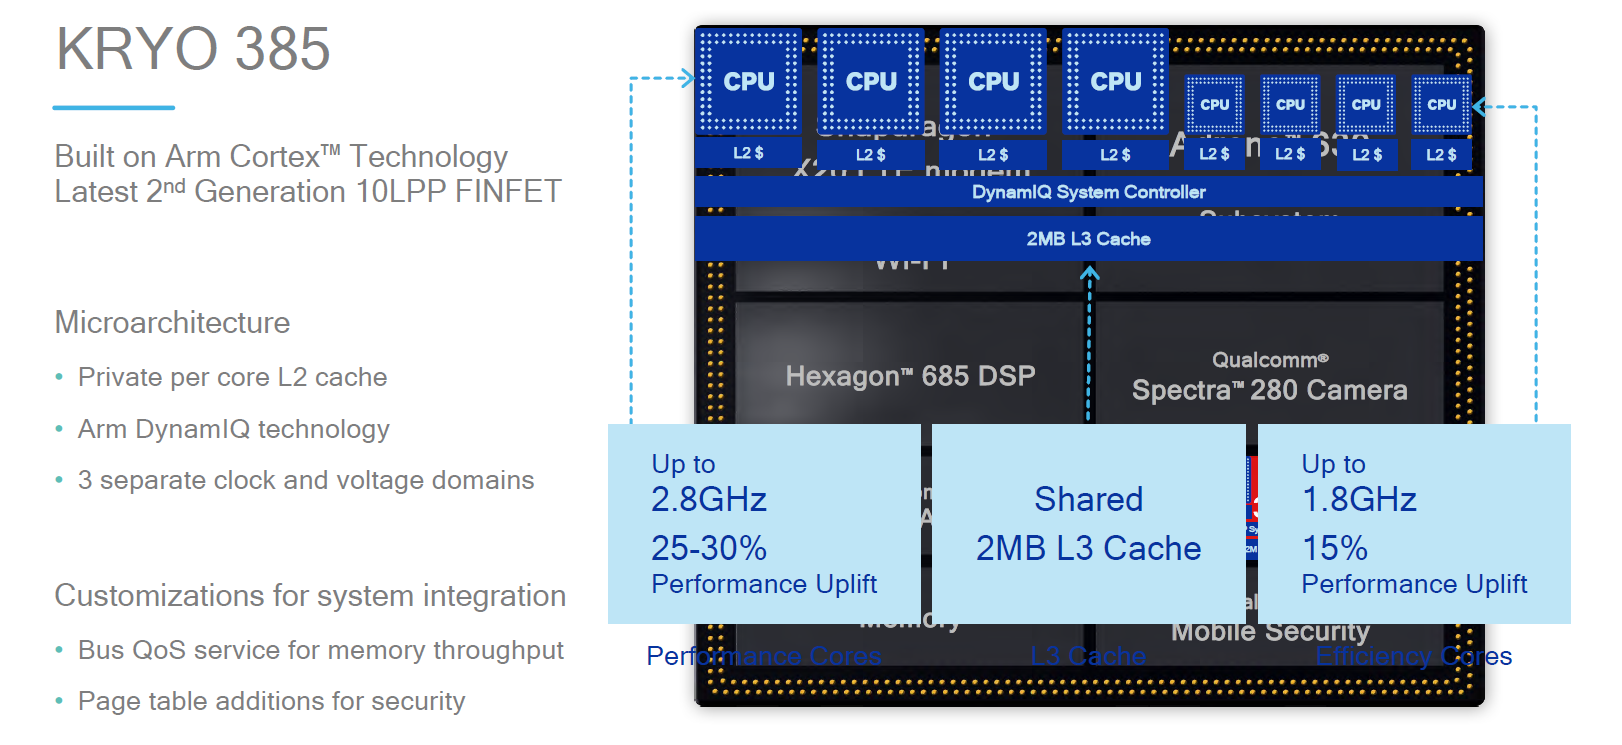 CPU & Memory Subsystem - The Snapdragon 845 Performance